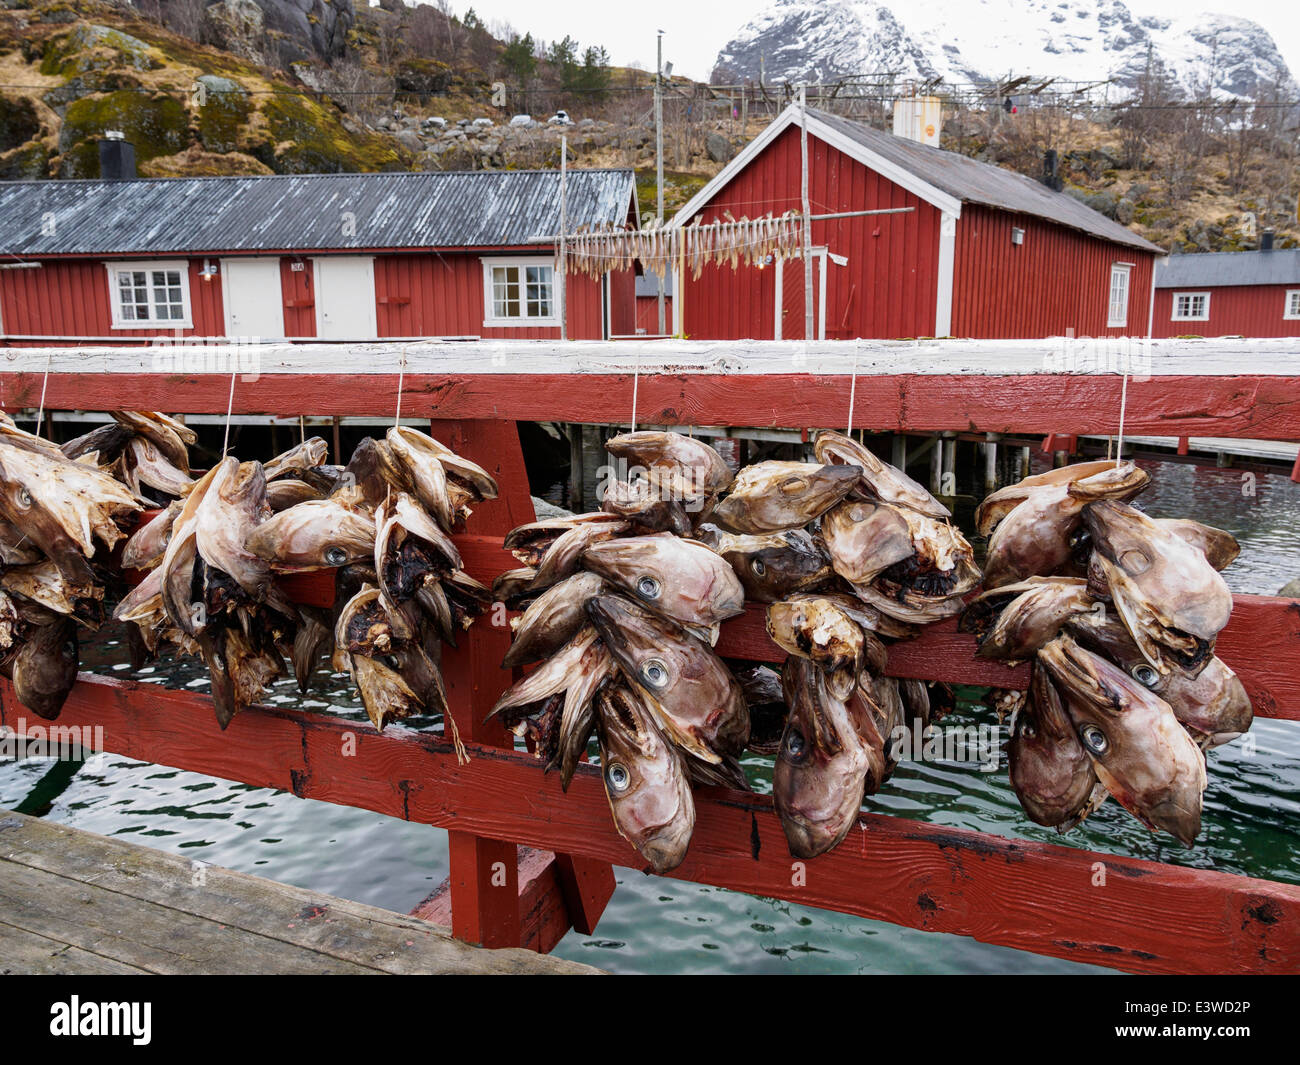 Stockfish (cod) heads are hung up to dry in Nusfjord on the Lofoten islands in Norway. - Stock Image